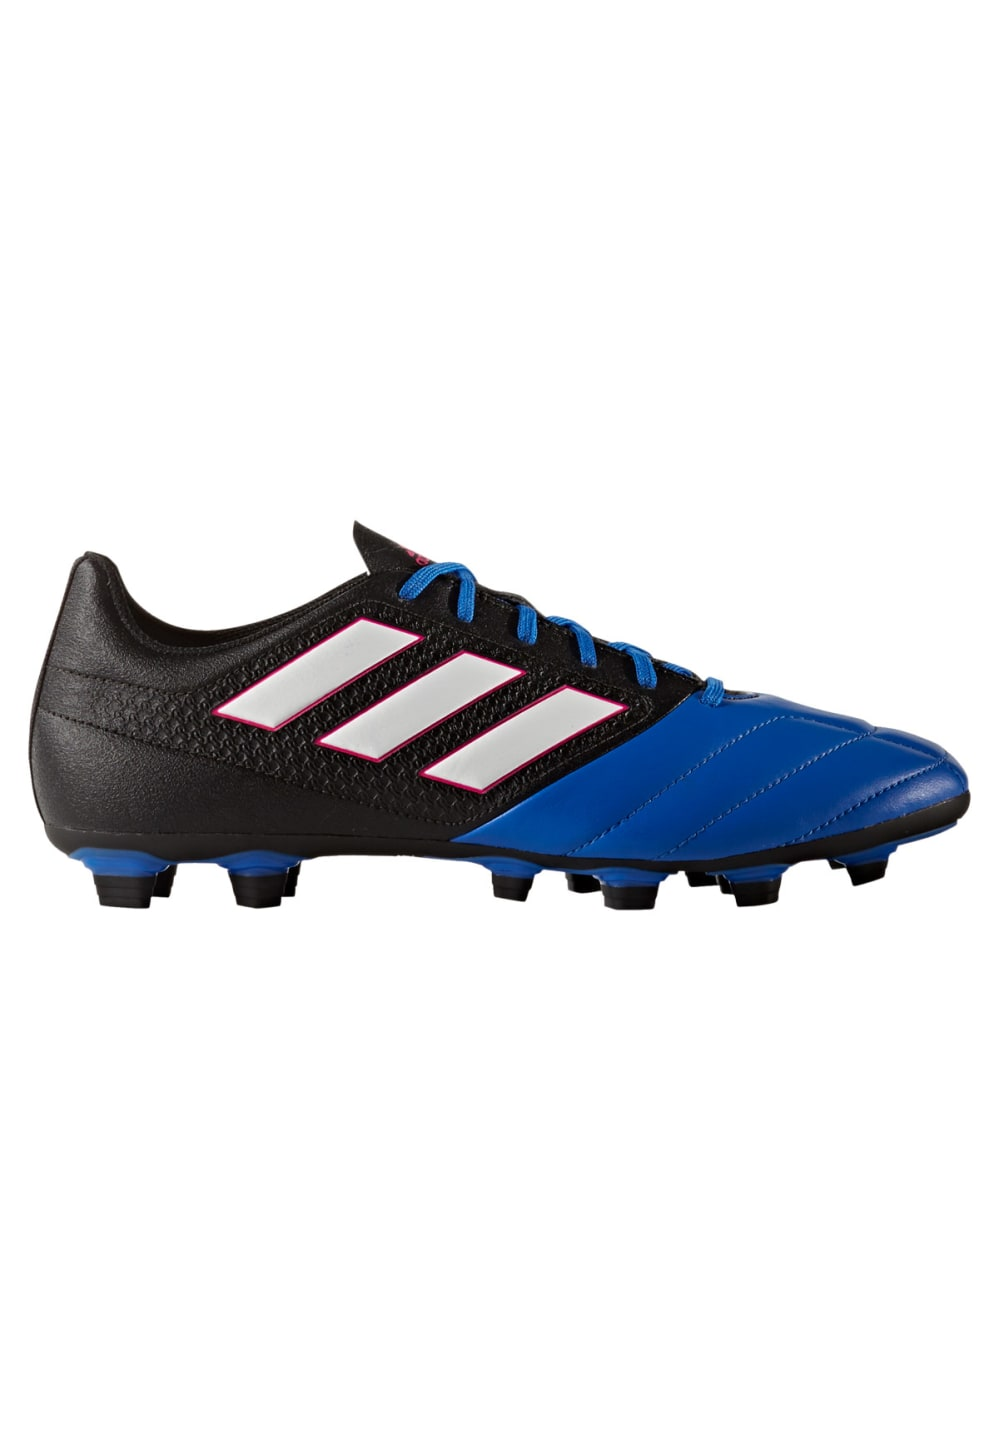 huge discount 42bfd b8058 ... adidas ACE 17.4 FxG - Football Shoes for Men - Black. Back to Overview.  1 2. Previous